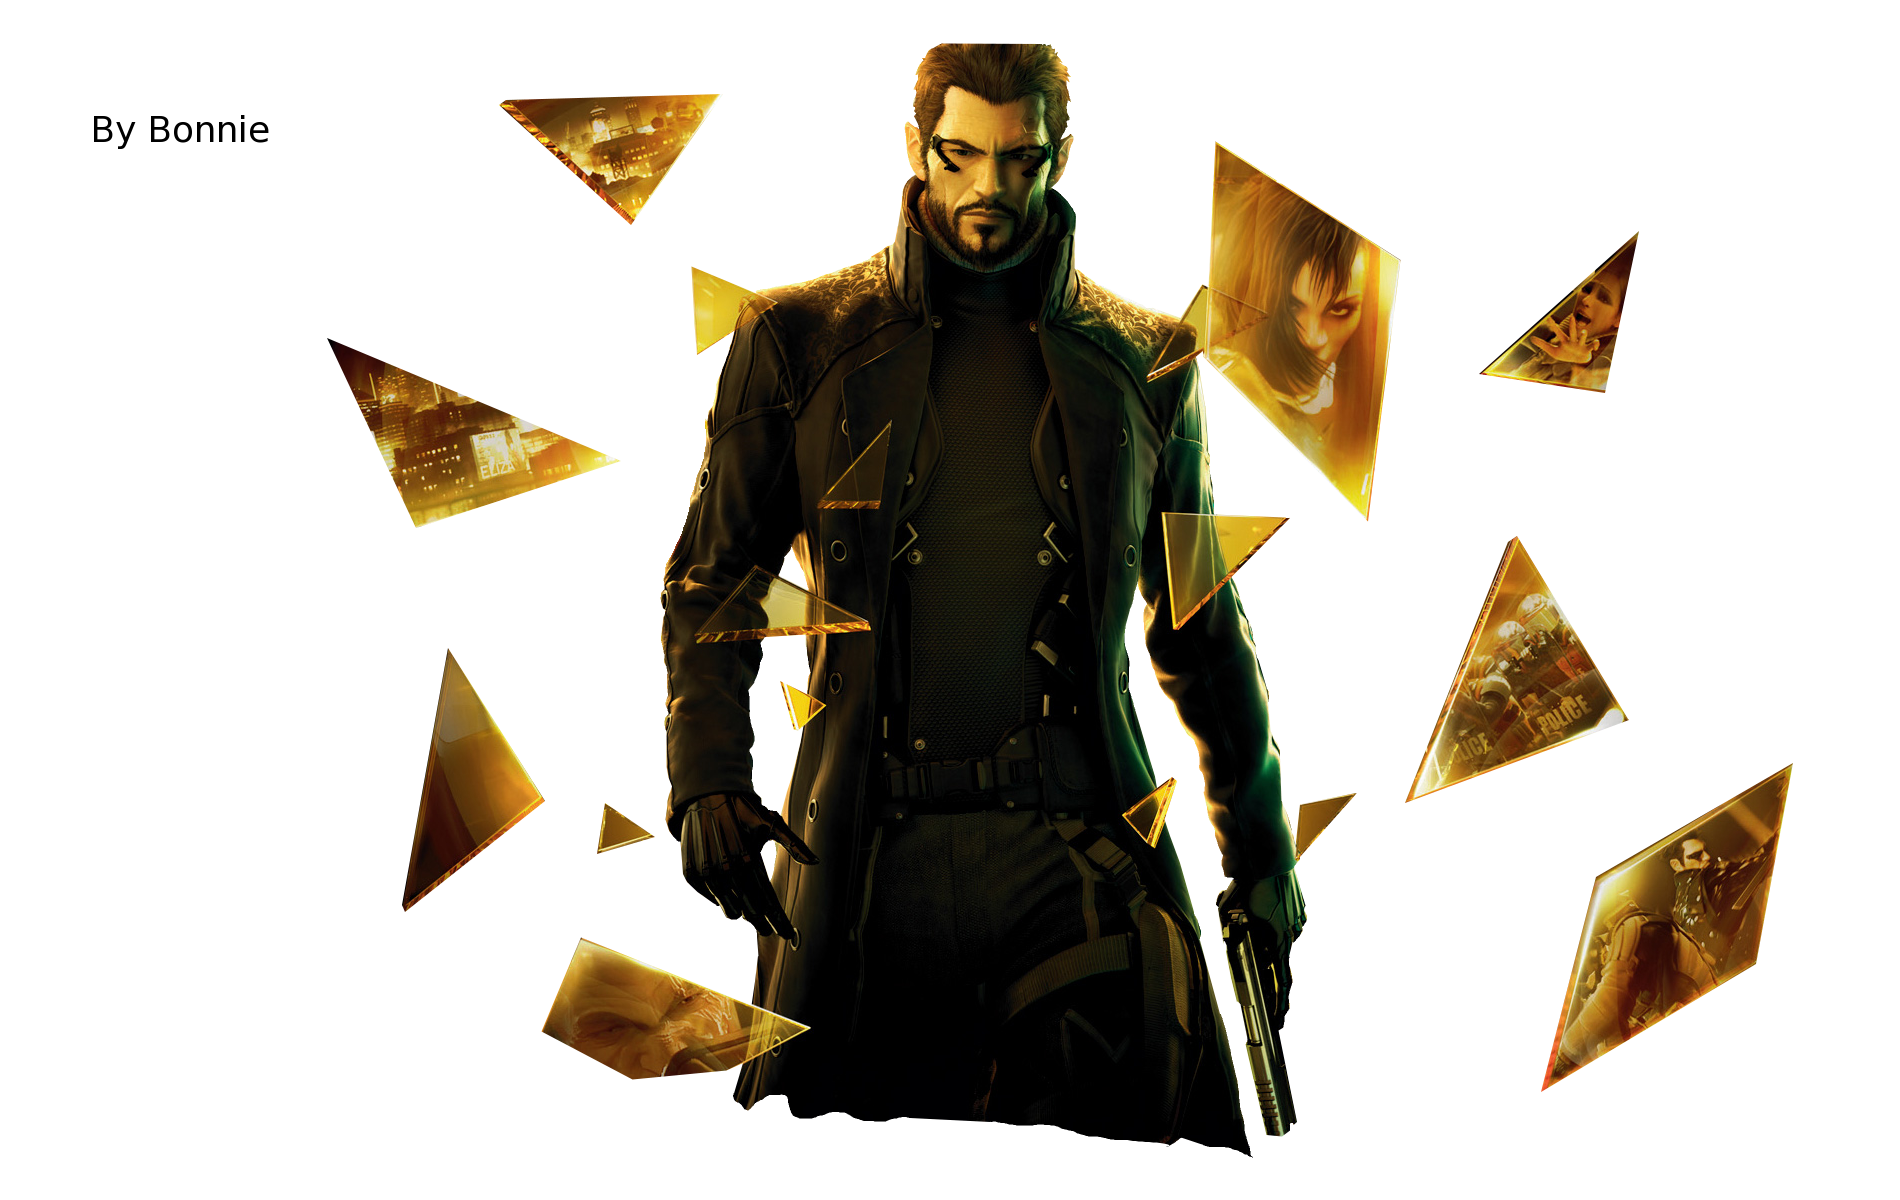 File:Deus Ex Mankind Divided